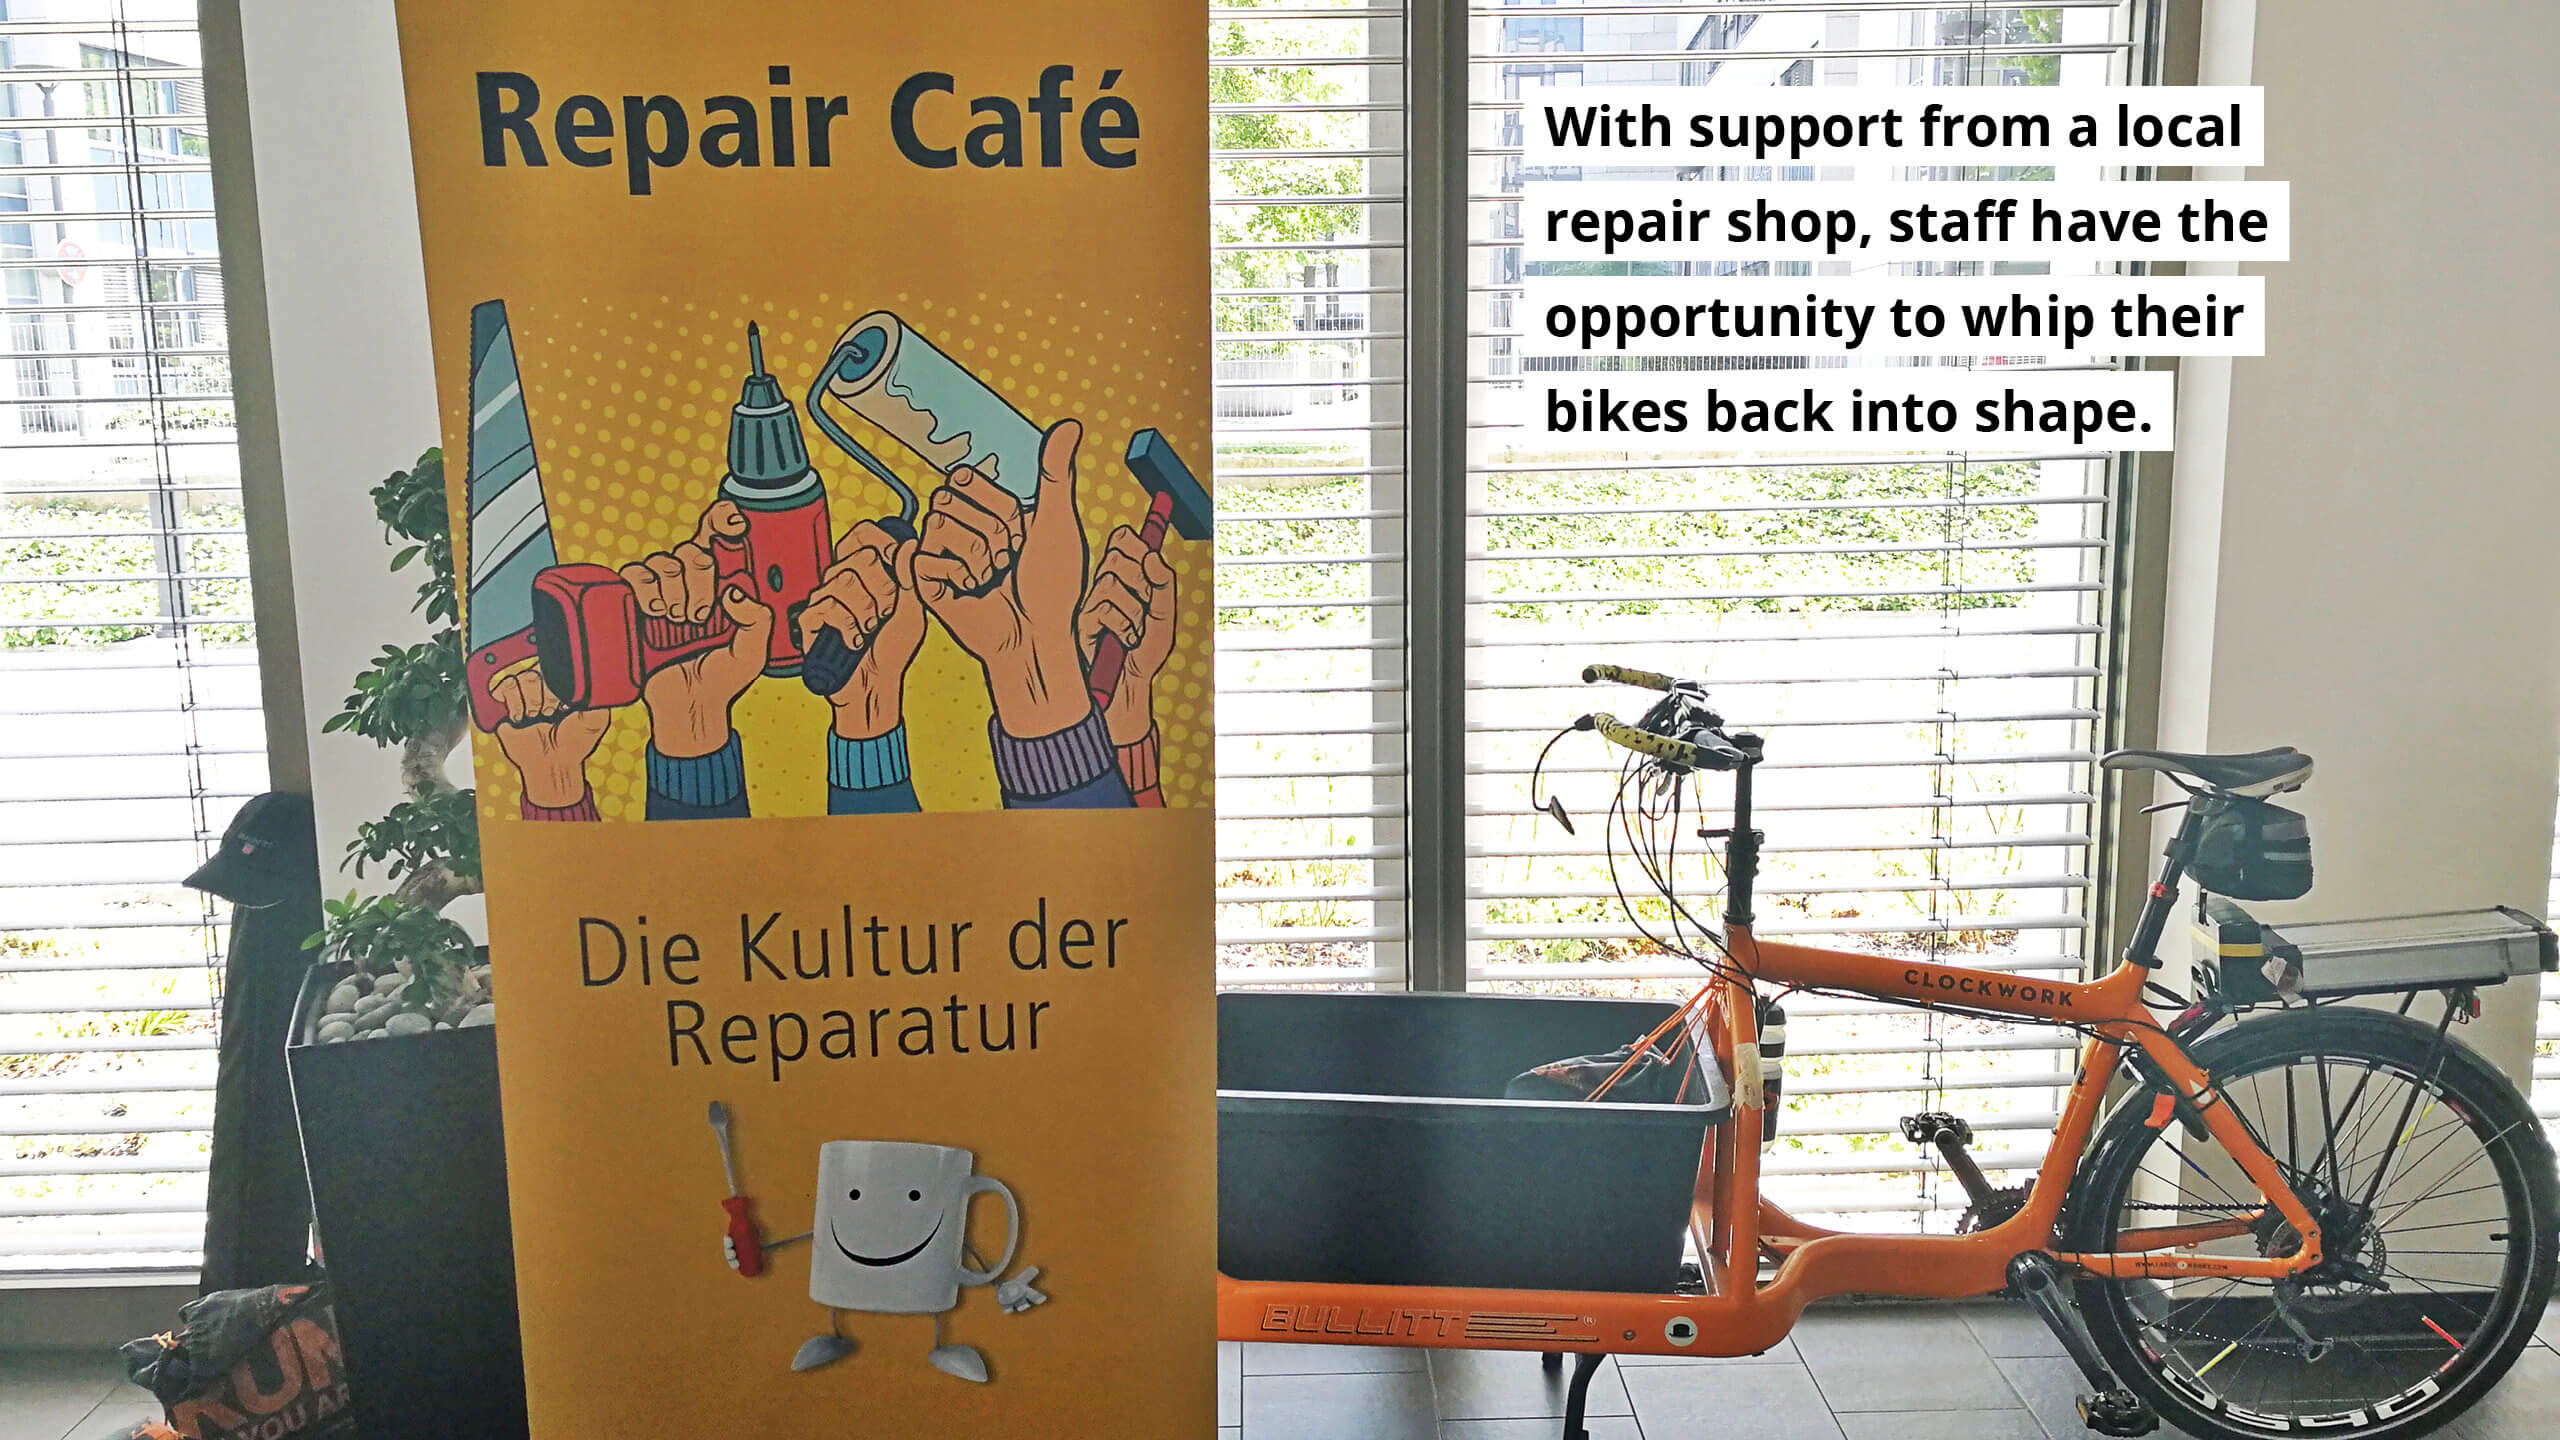 With support from a local repair shop, staff have the opportunity to whip their bikes back into shape.